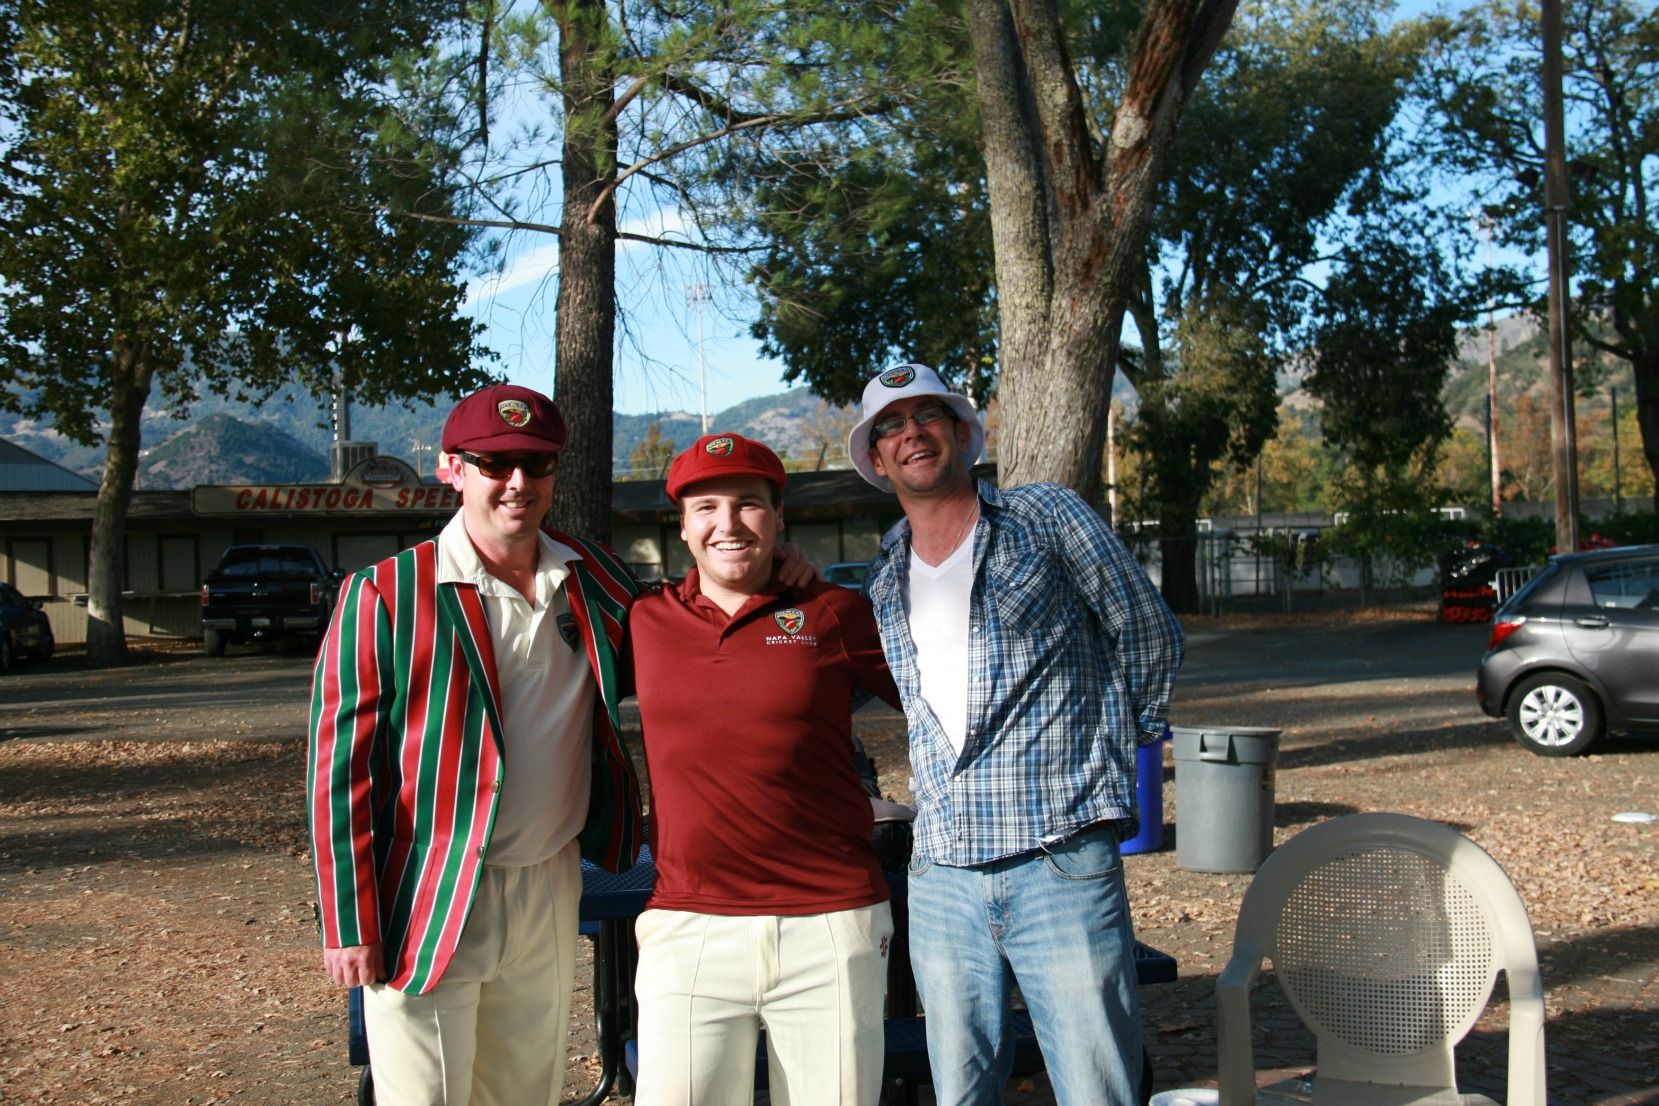 NVCC members (L-R) Rob Bolch, Michael Rule, and Graham Jones at the final game of 2015